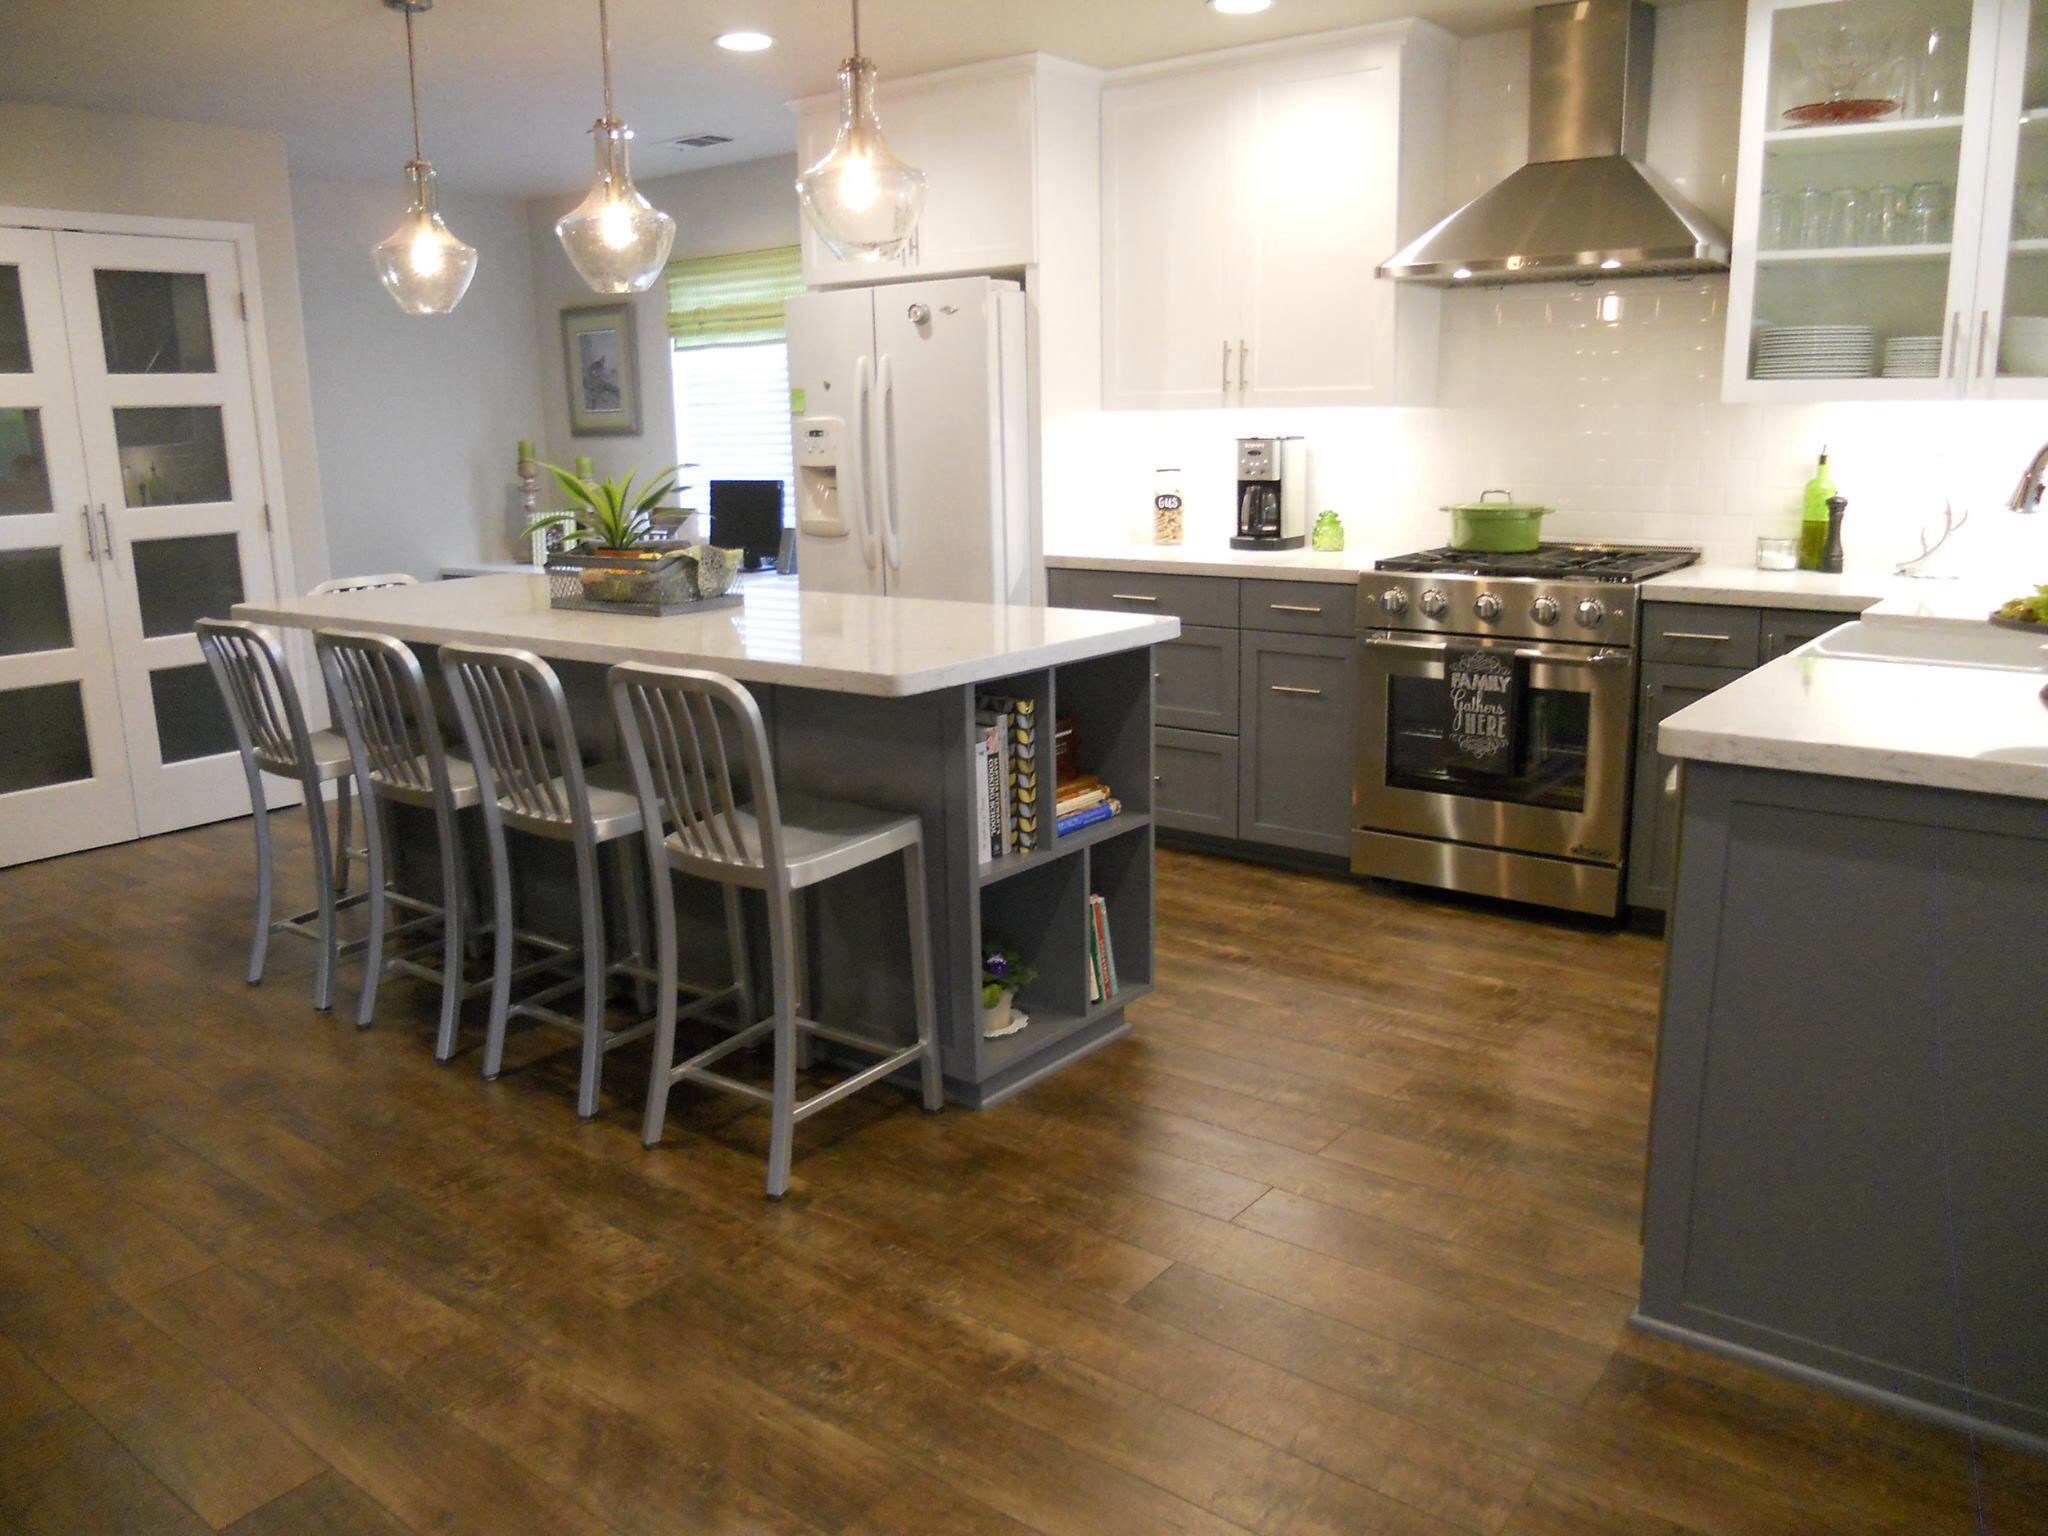 Lower Cabinets Color Benjamin Moore Antique Pewter Ppg1013 5 Uppers Benjamin Mo Kitchen Cabinet Layout Kitchen Inspiration Design White Kitchen Remodeling